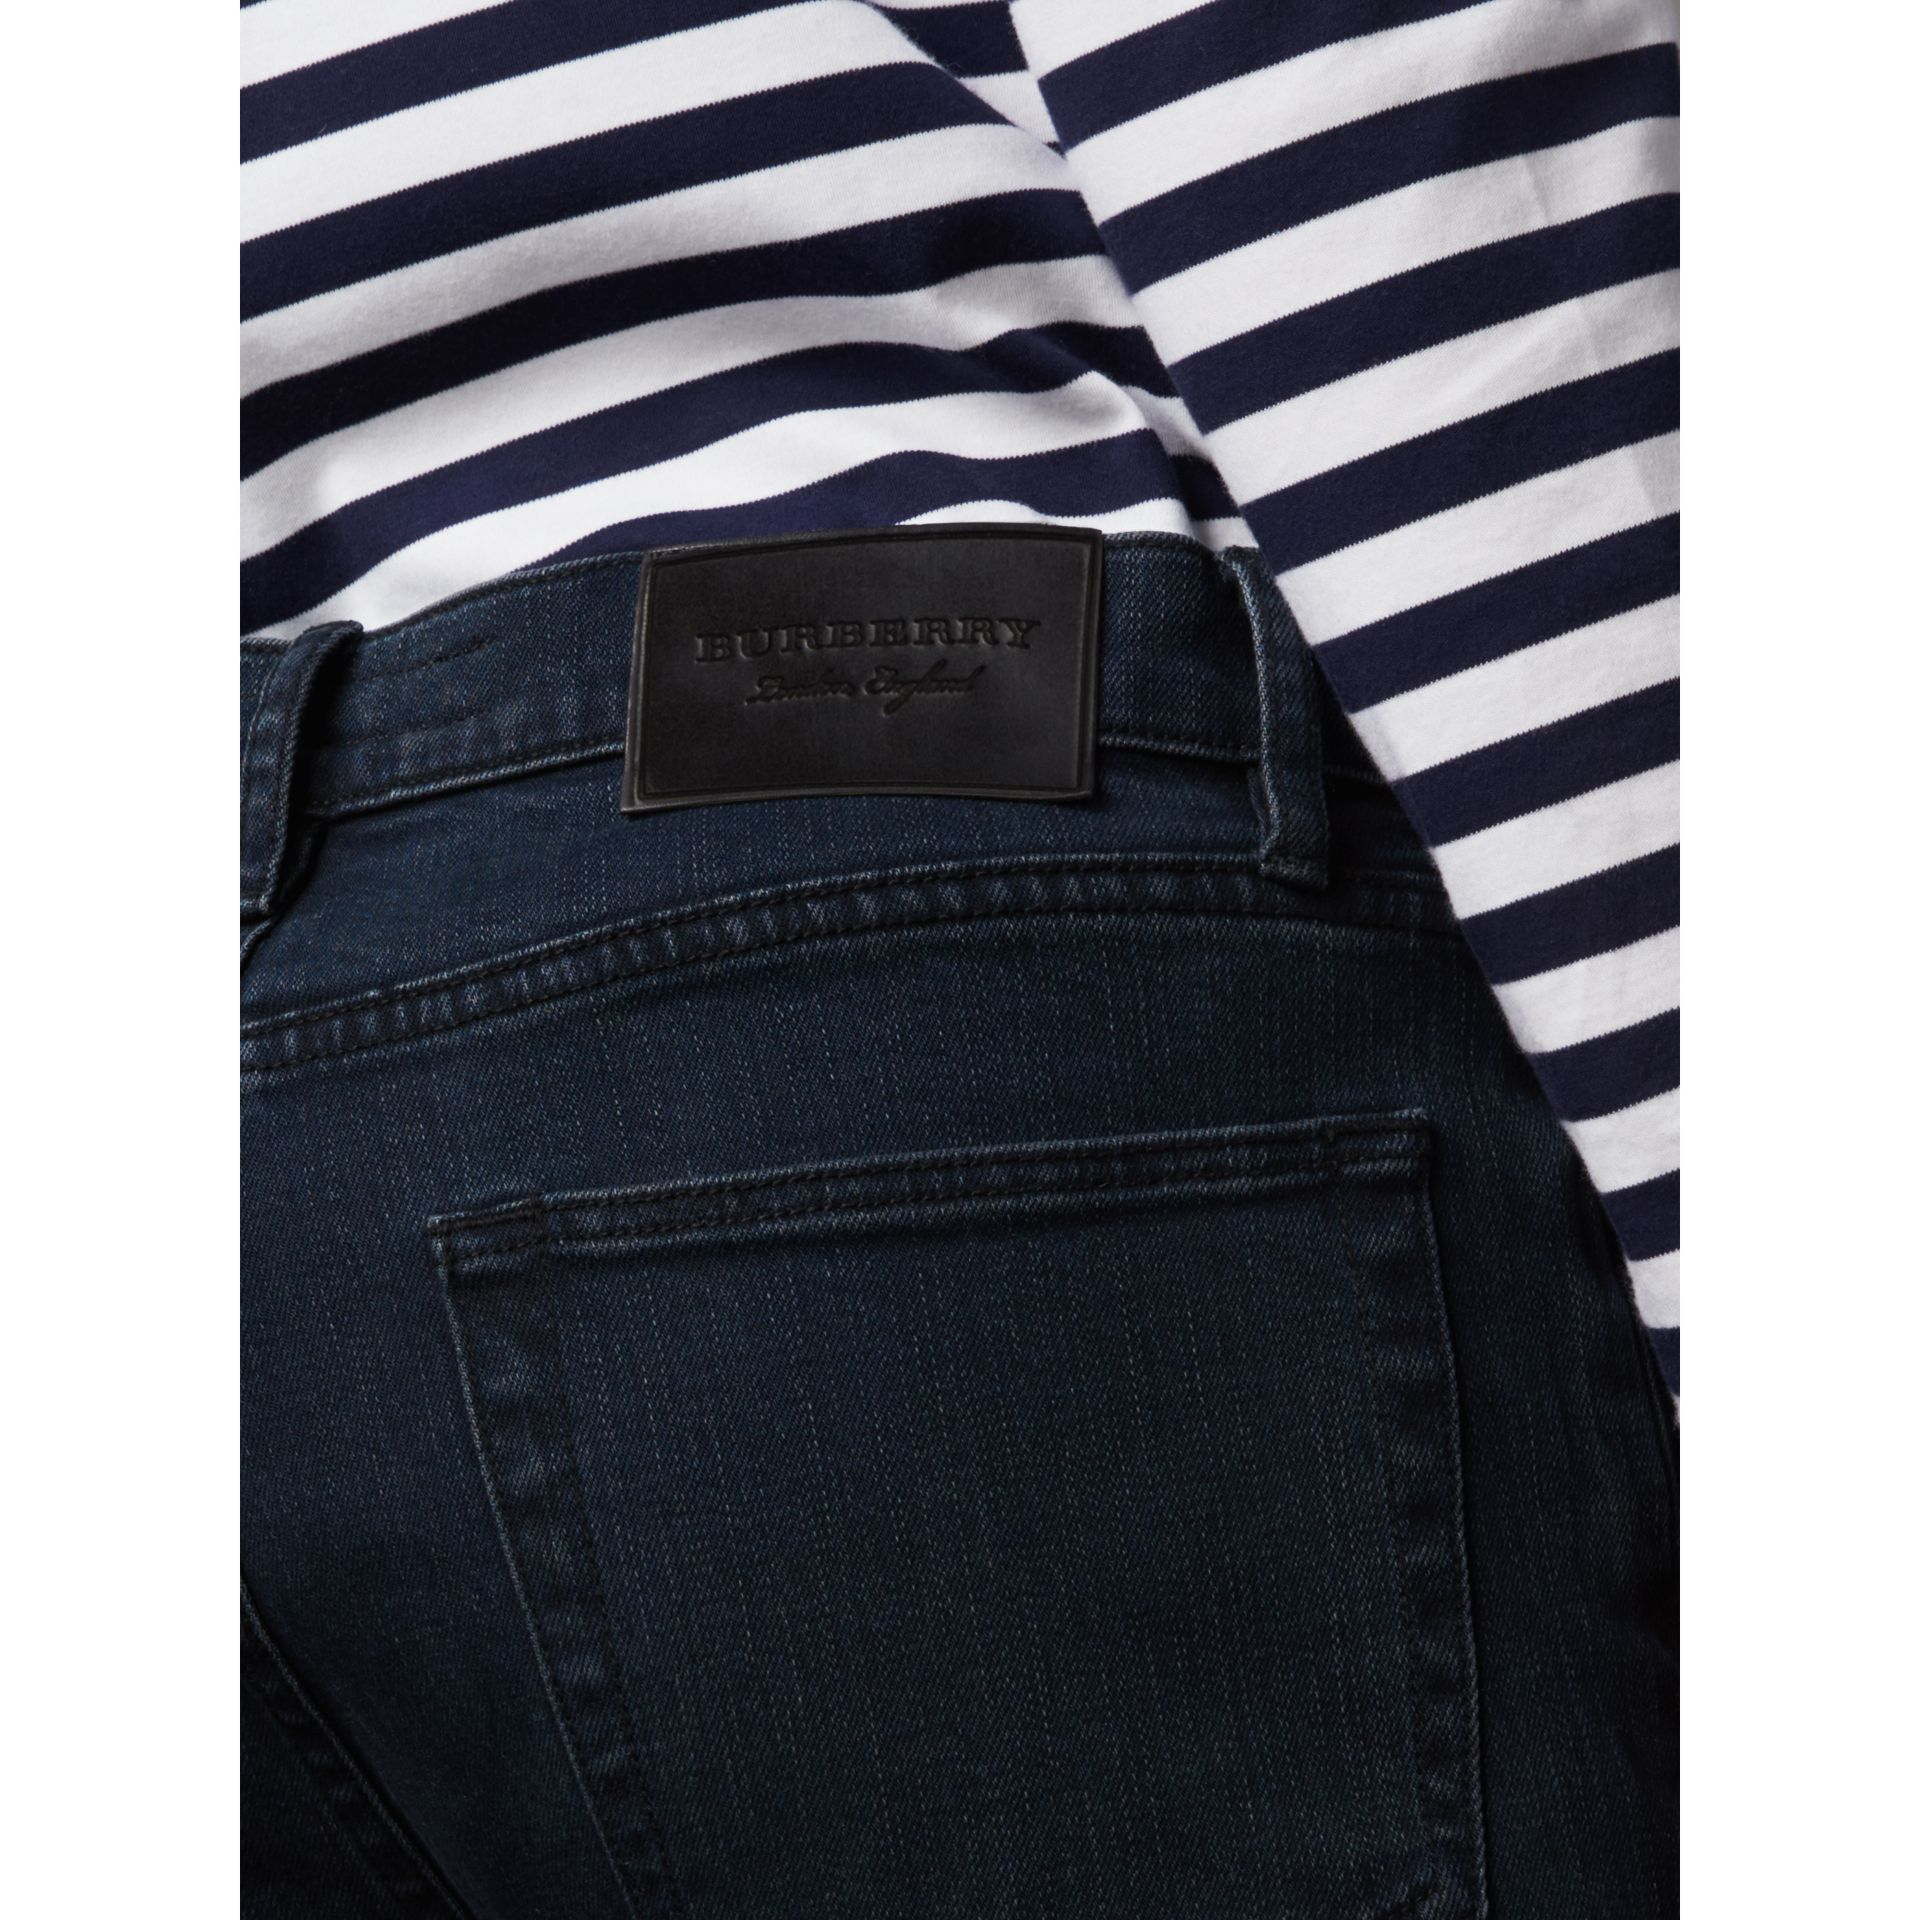 Slim Fit Over-dyed Stretch Jeans in Dark Indigo - Men | Burberry - gallery image 1